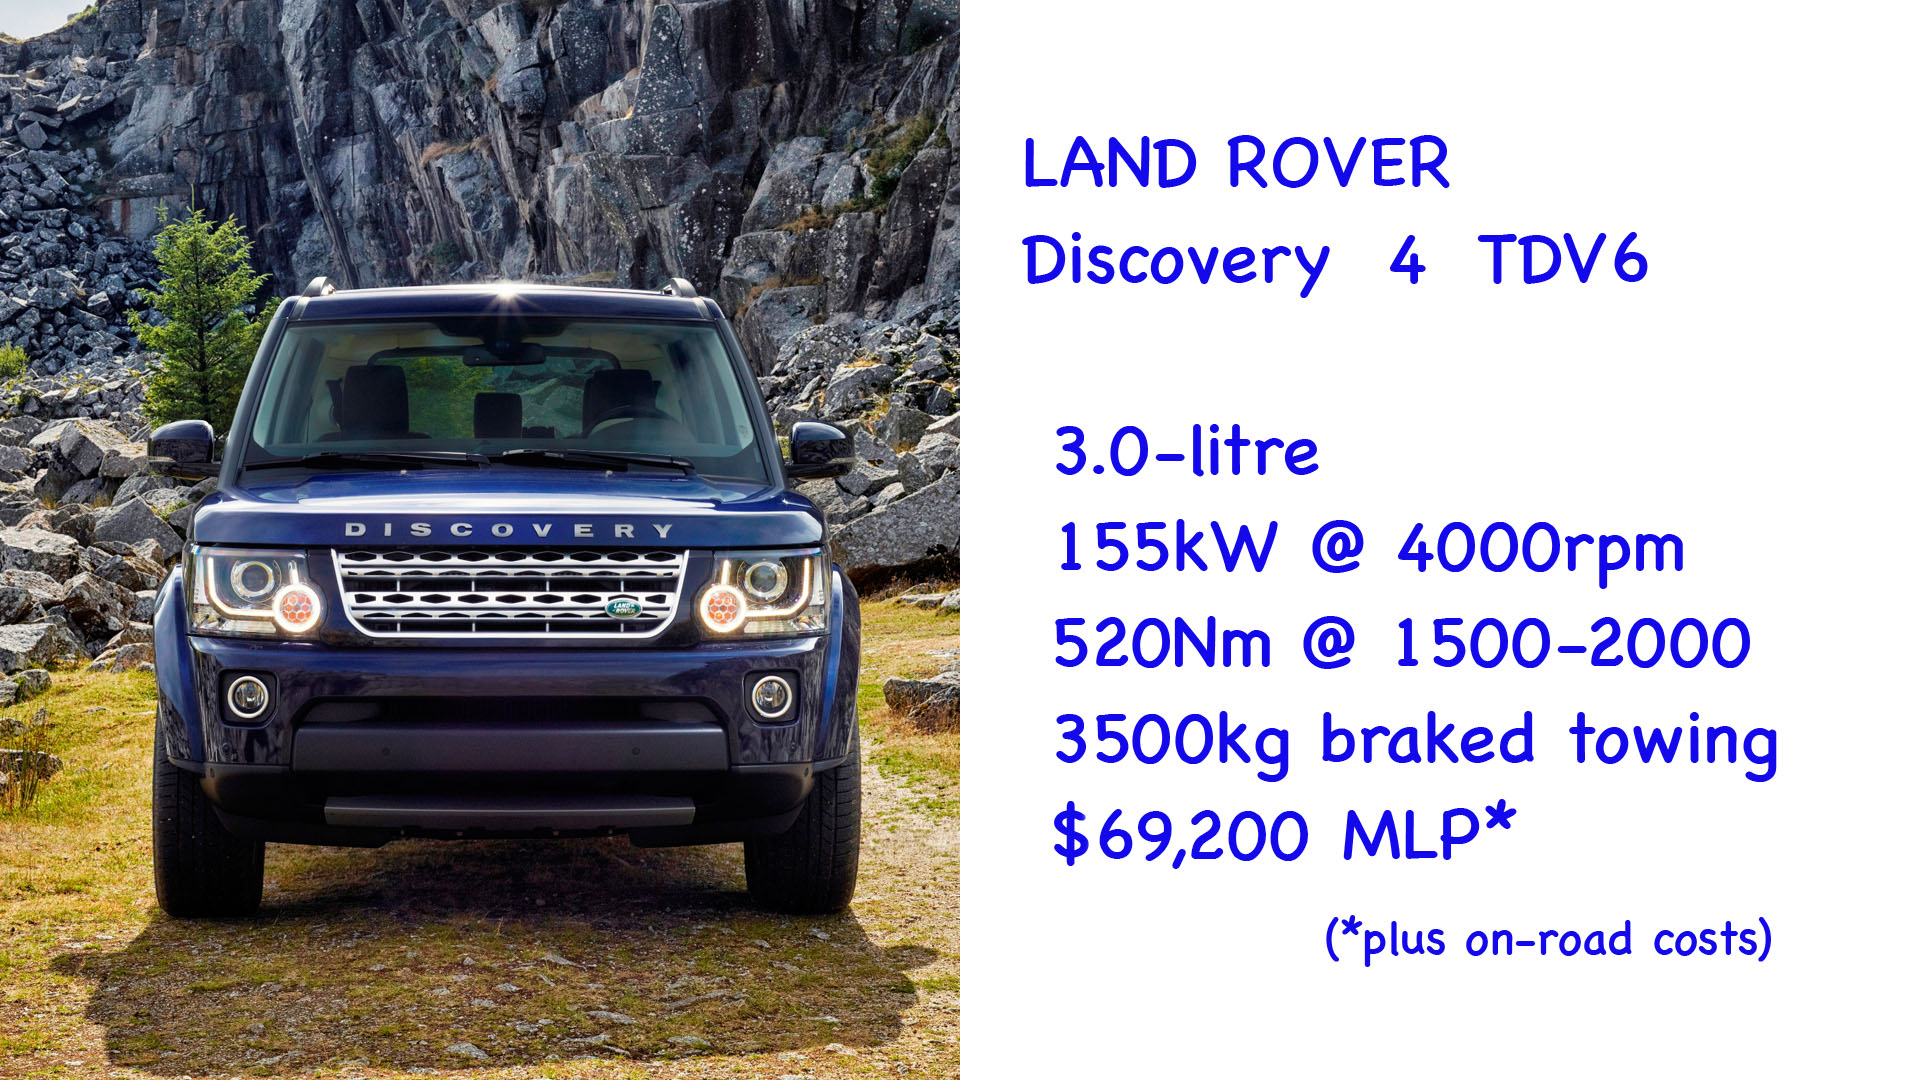 ABOVE: Land Rover Discovery